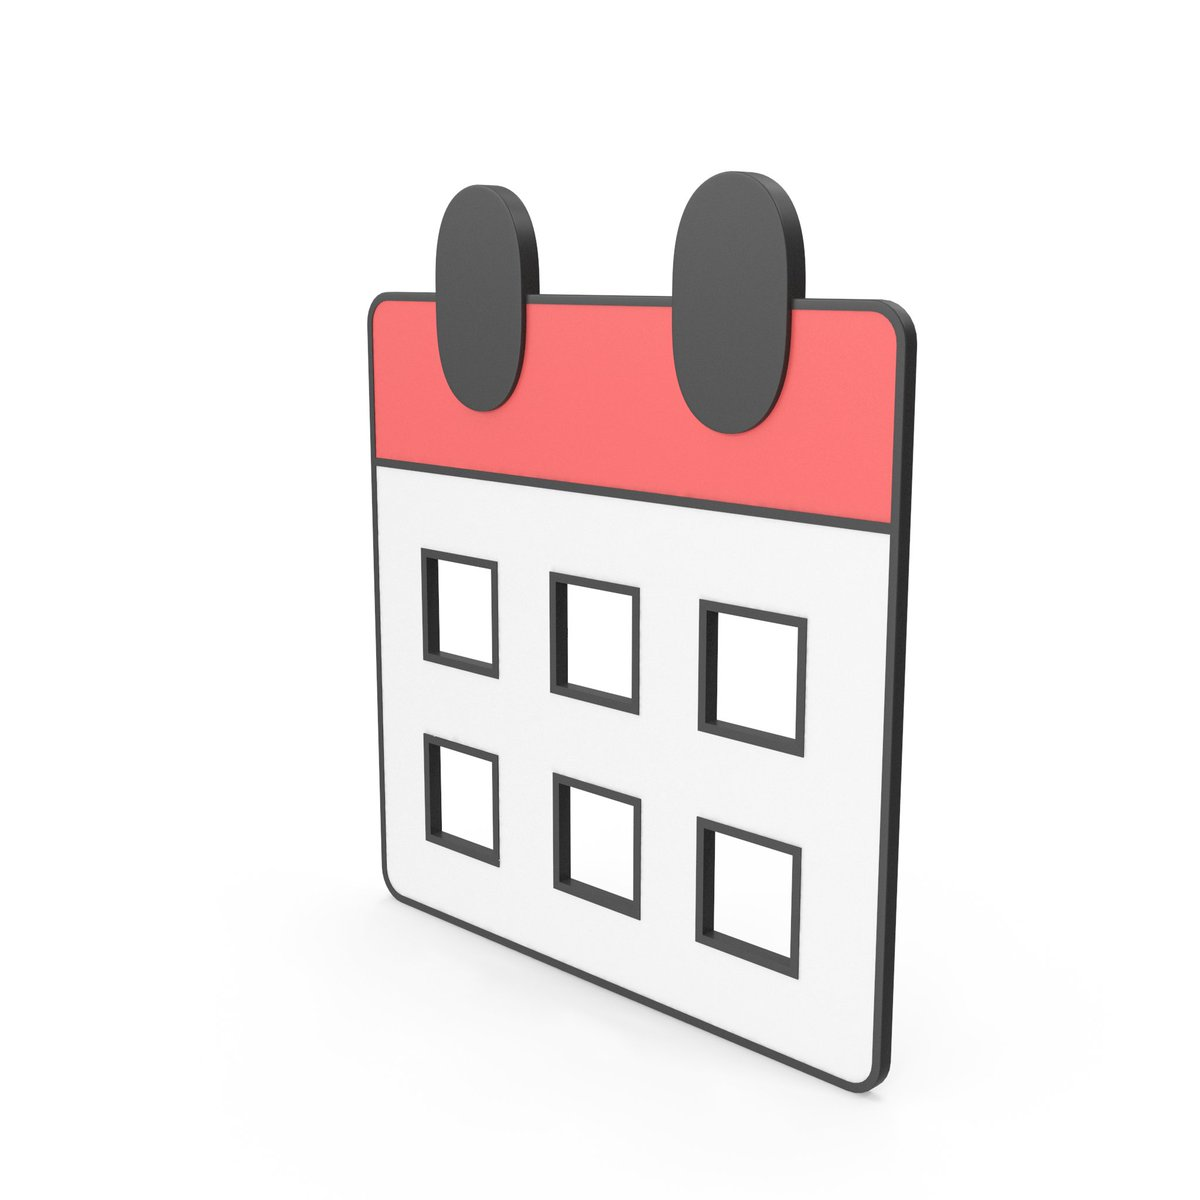 Sbisd Calendar 2022.Spring Branch Isd On Twitter The Sbisd Board Of Trustees Unanimously Approved The Academic Calendars For The Next Two School Years Check Out The 2021 22 And 2022 23 Academic Calendars Here Https T Co 8hp4quufkj Https T Co F2qerr1kla